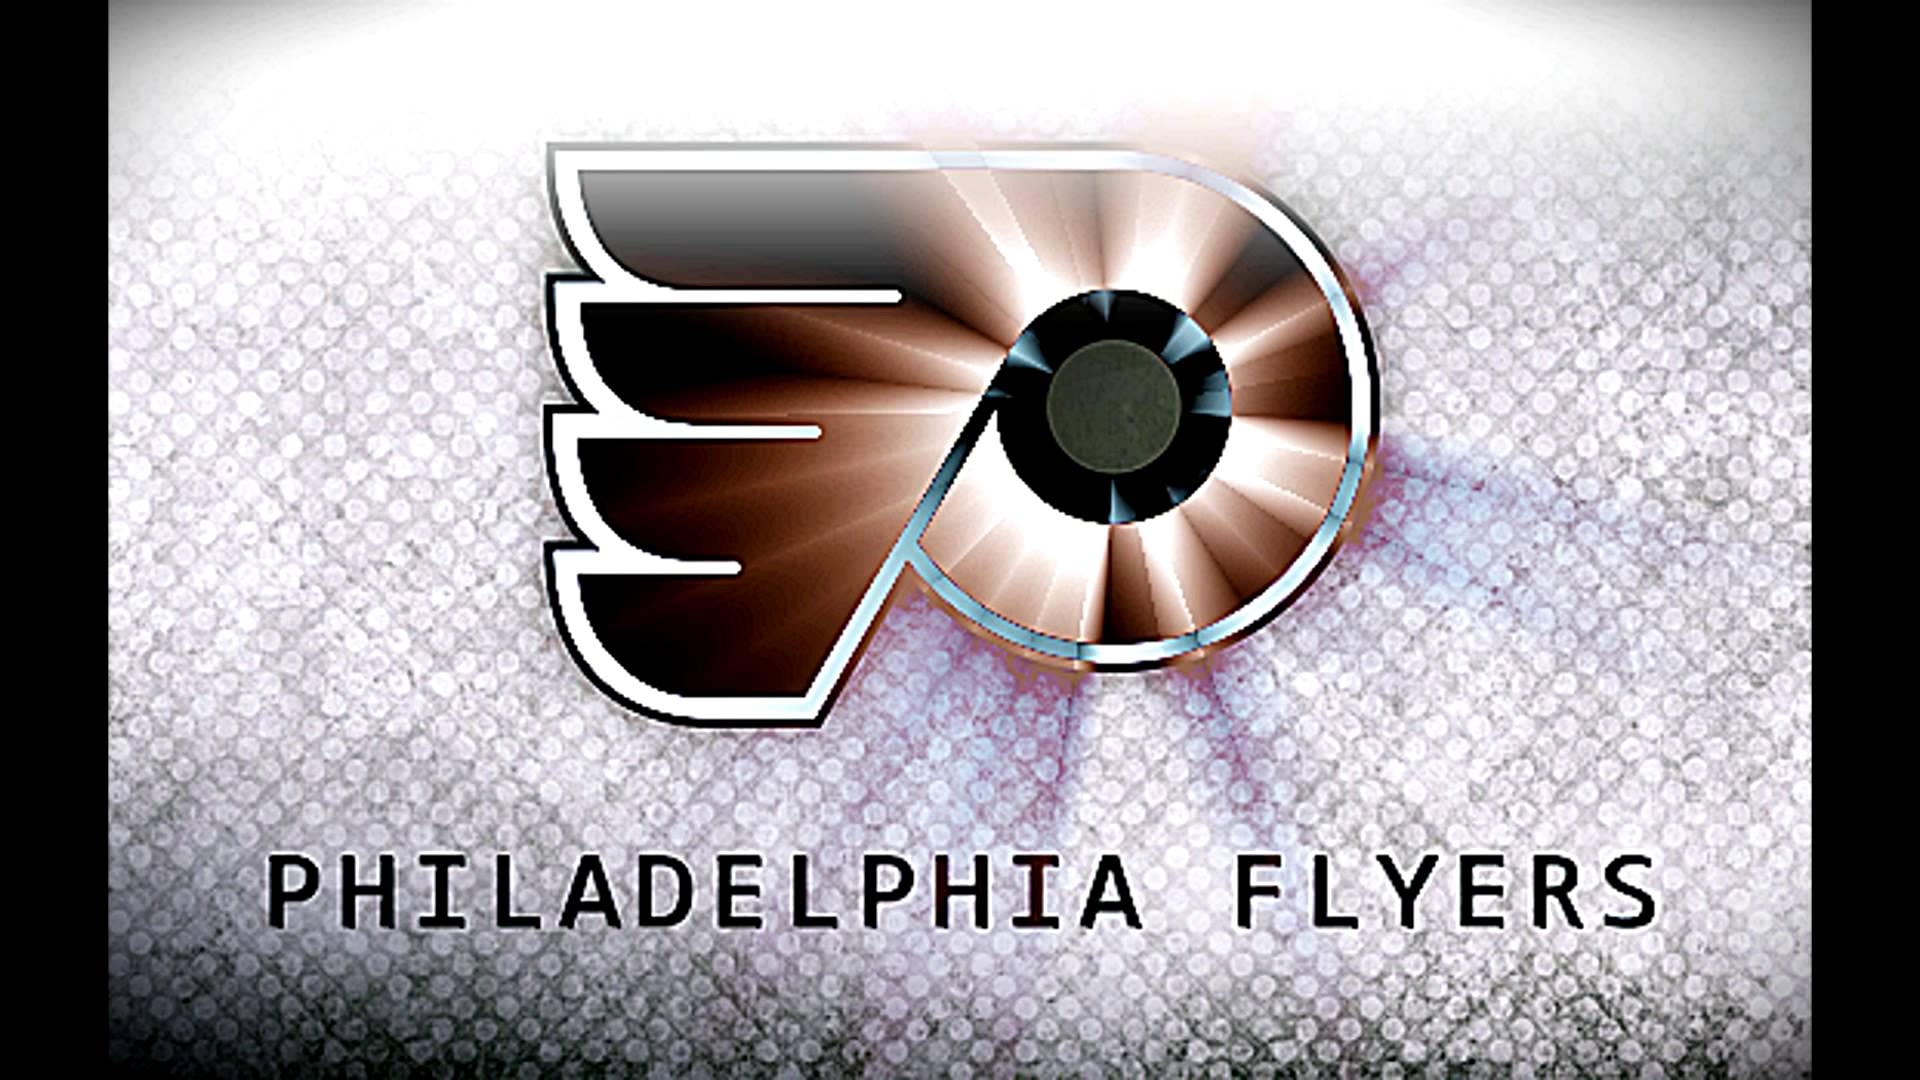 philadelphia flyers wallpaper HD 1920x1080